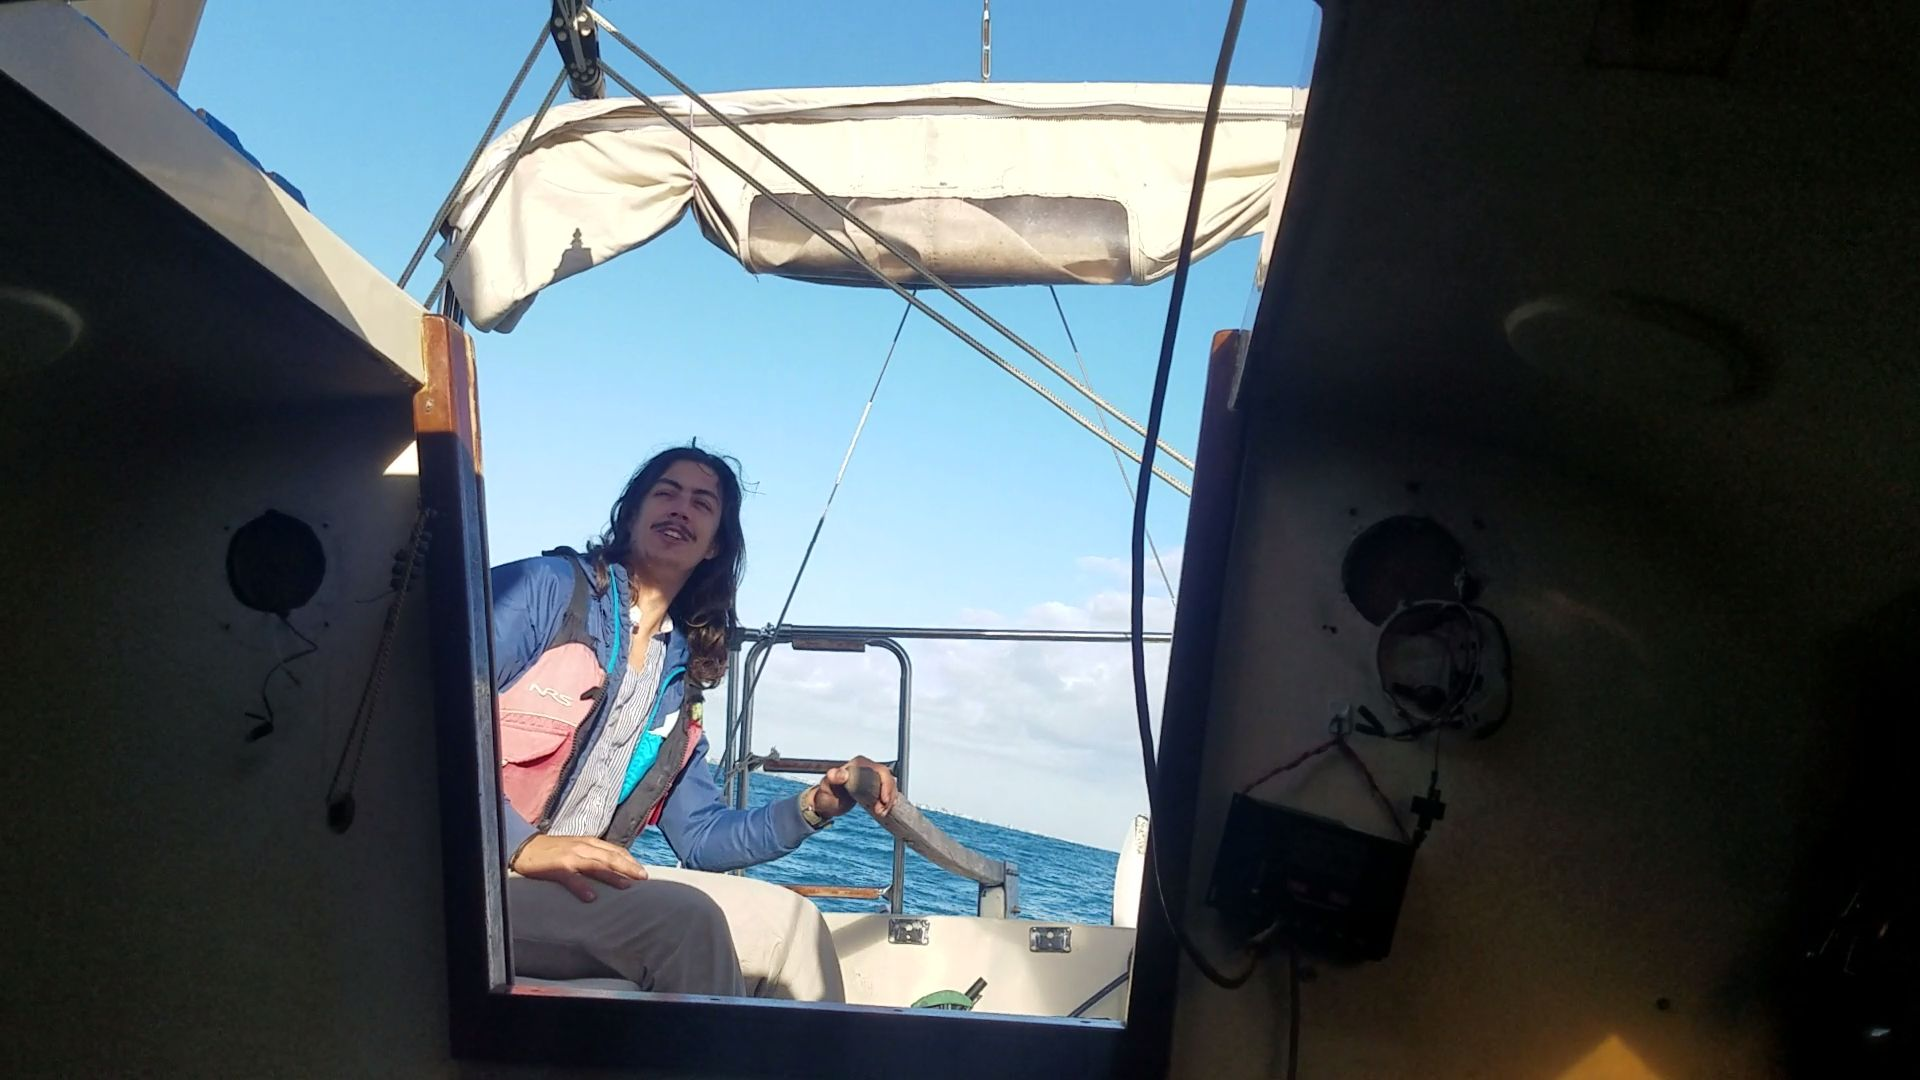 videocapture_20190115-092633-jpg.48603_Turns out if you spend enough time in Florida you will eventually be given a sailboat._Boat Punk / Sailing_Squat the Planet_7:37 AM